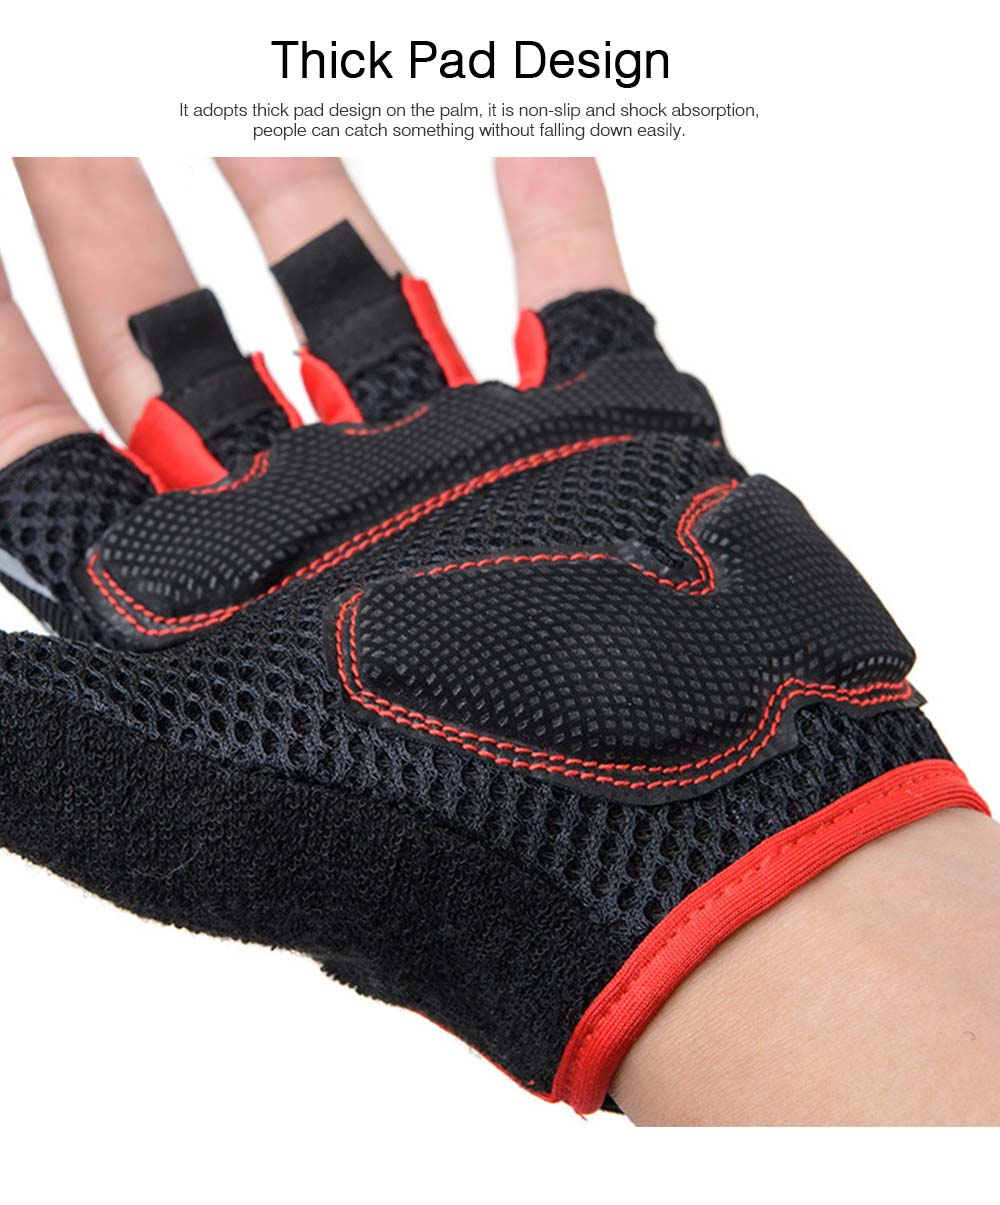 Men Women Outdoor Comfortable Sports Bicycle Cycling Gloves Half Finger Breathable Non-slip Soft Shockproof Mountain Bike Gloves 2